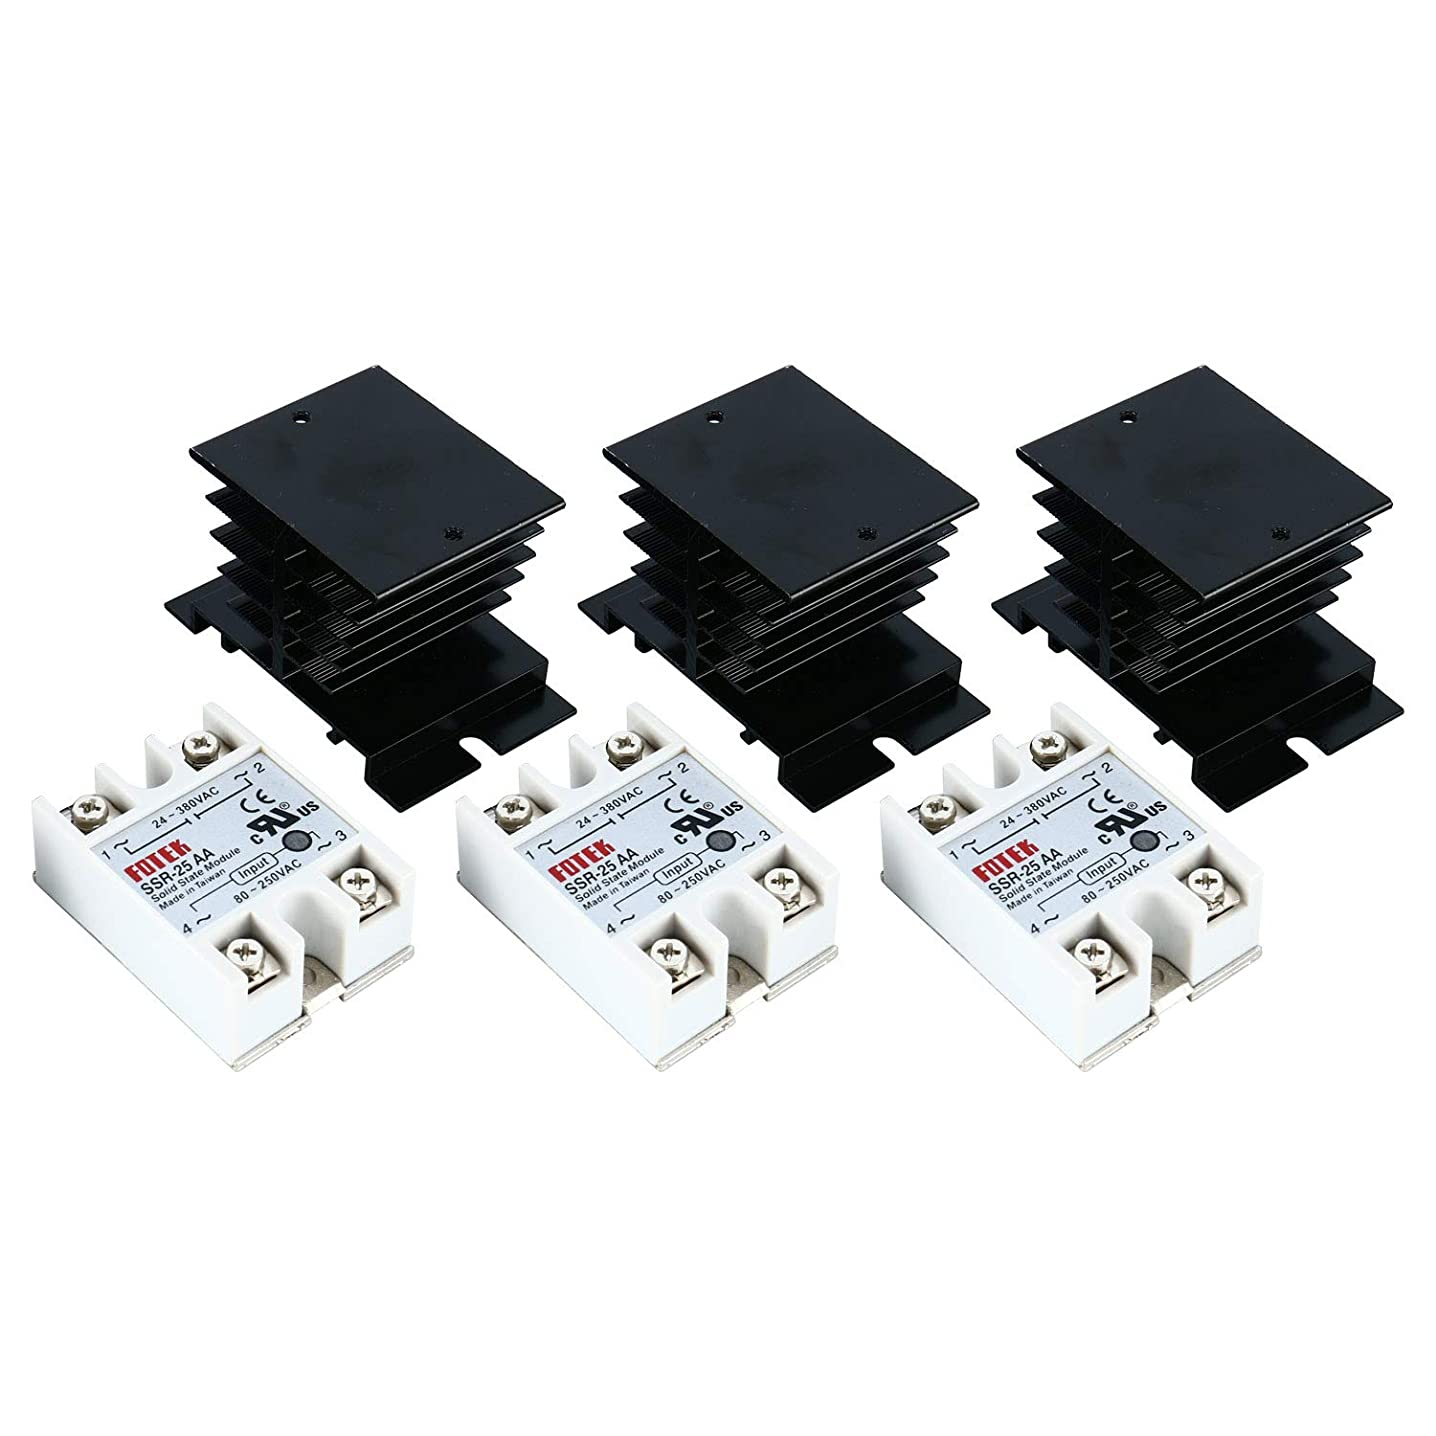 YaeCCC Solid State Controller with Heat Sink, 3PCS 25AA Solid State Controller + 3PCS Heat Sink Input 80-250VAC Output 24-380VAC fcvhzxioq